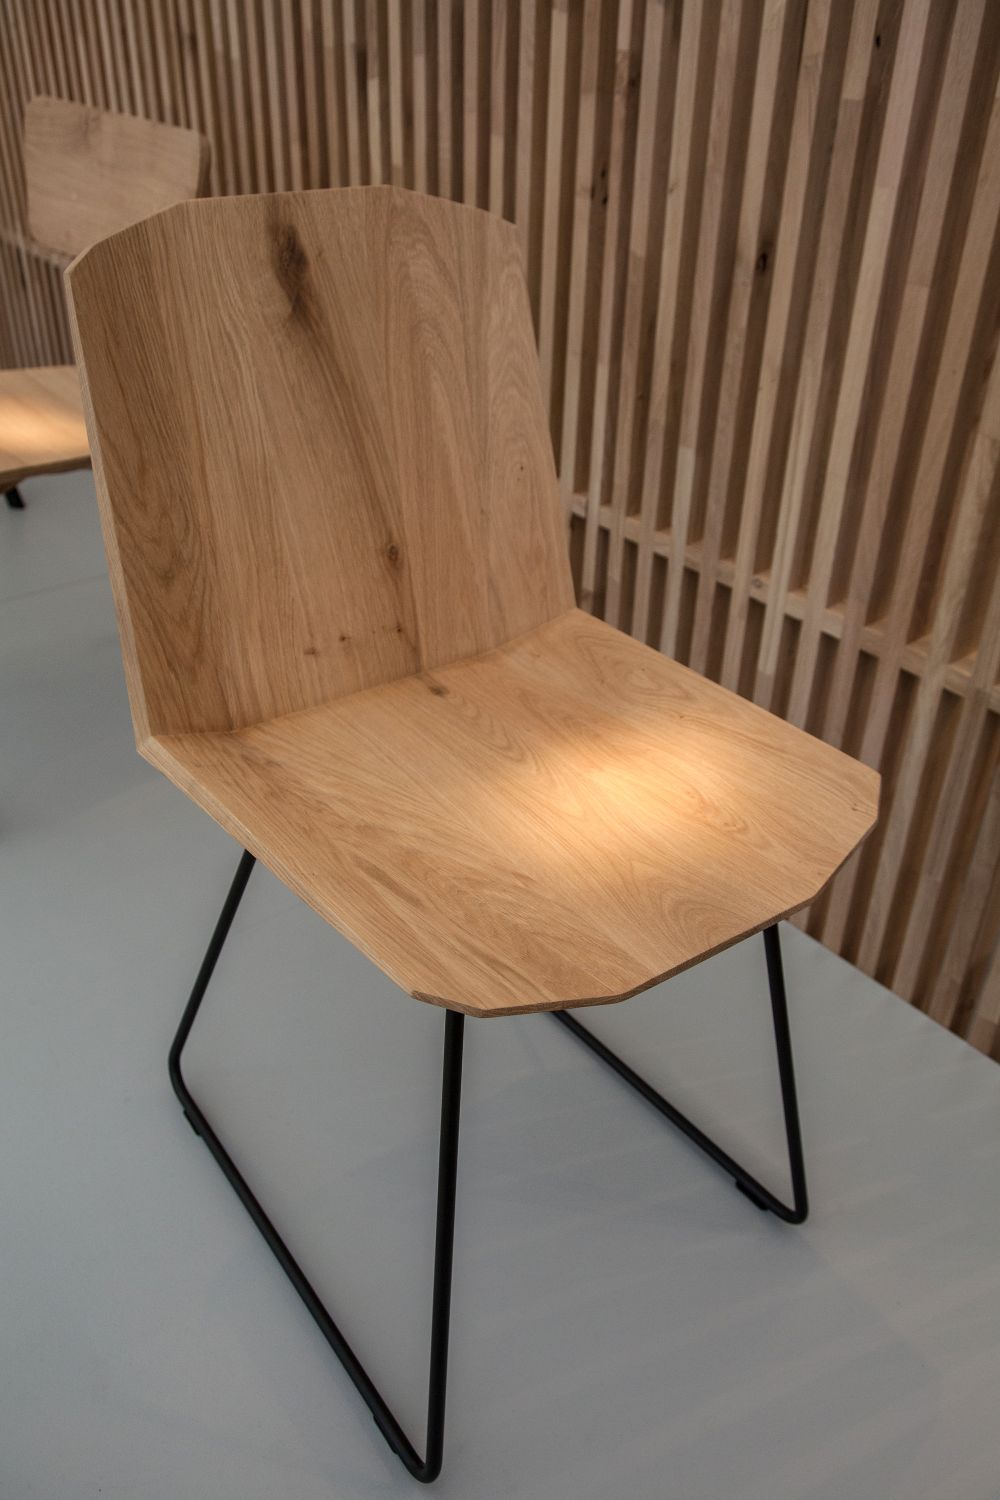 Wood and wire frame chair